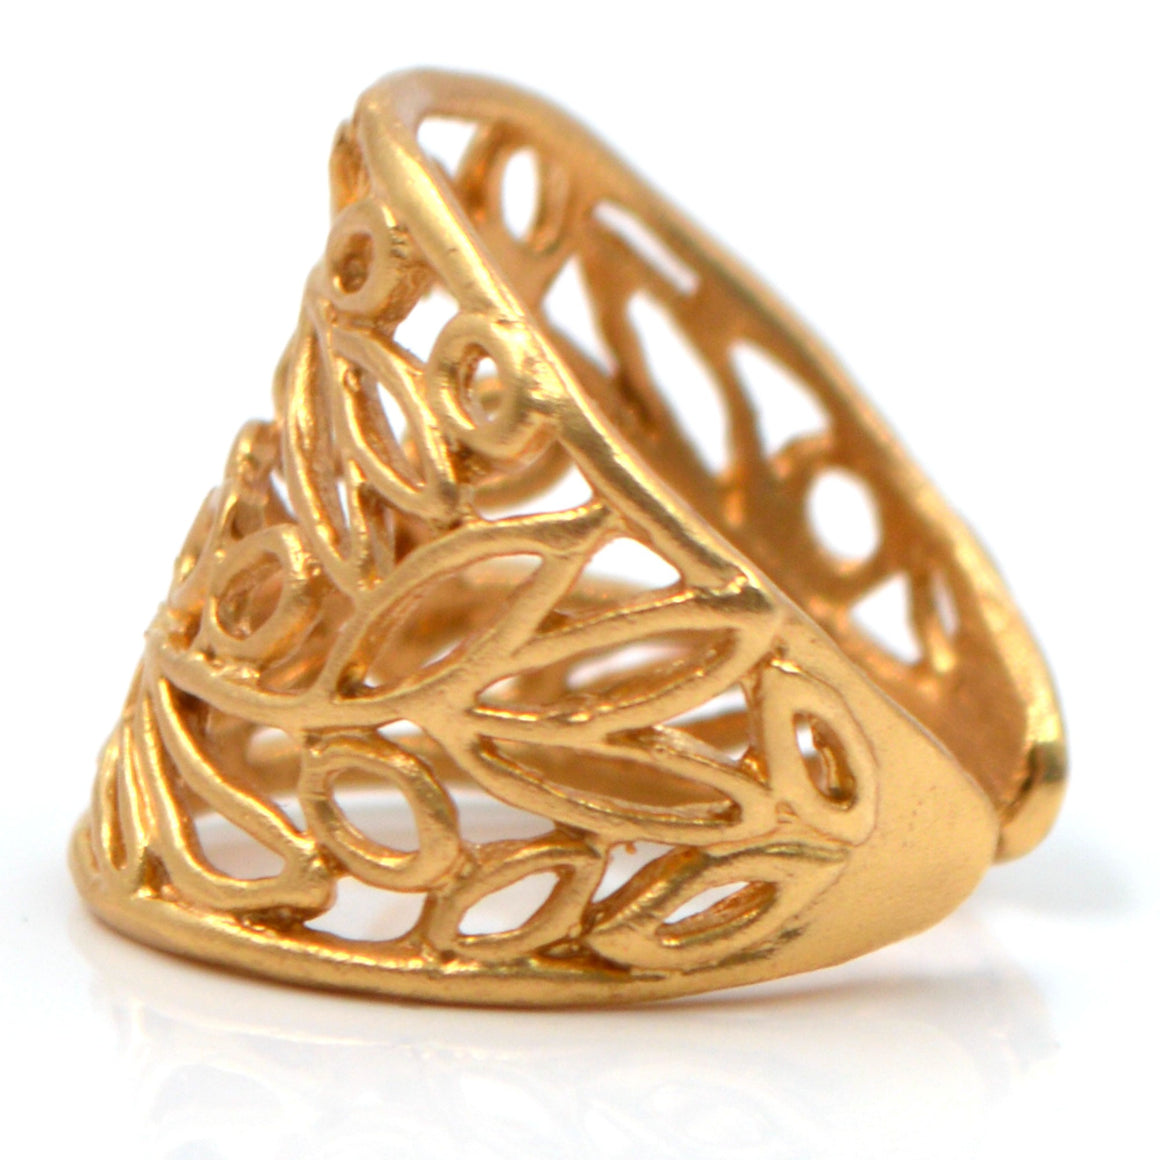 Olive Branch Ring - 24K Gold Vermeil